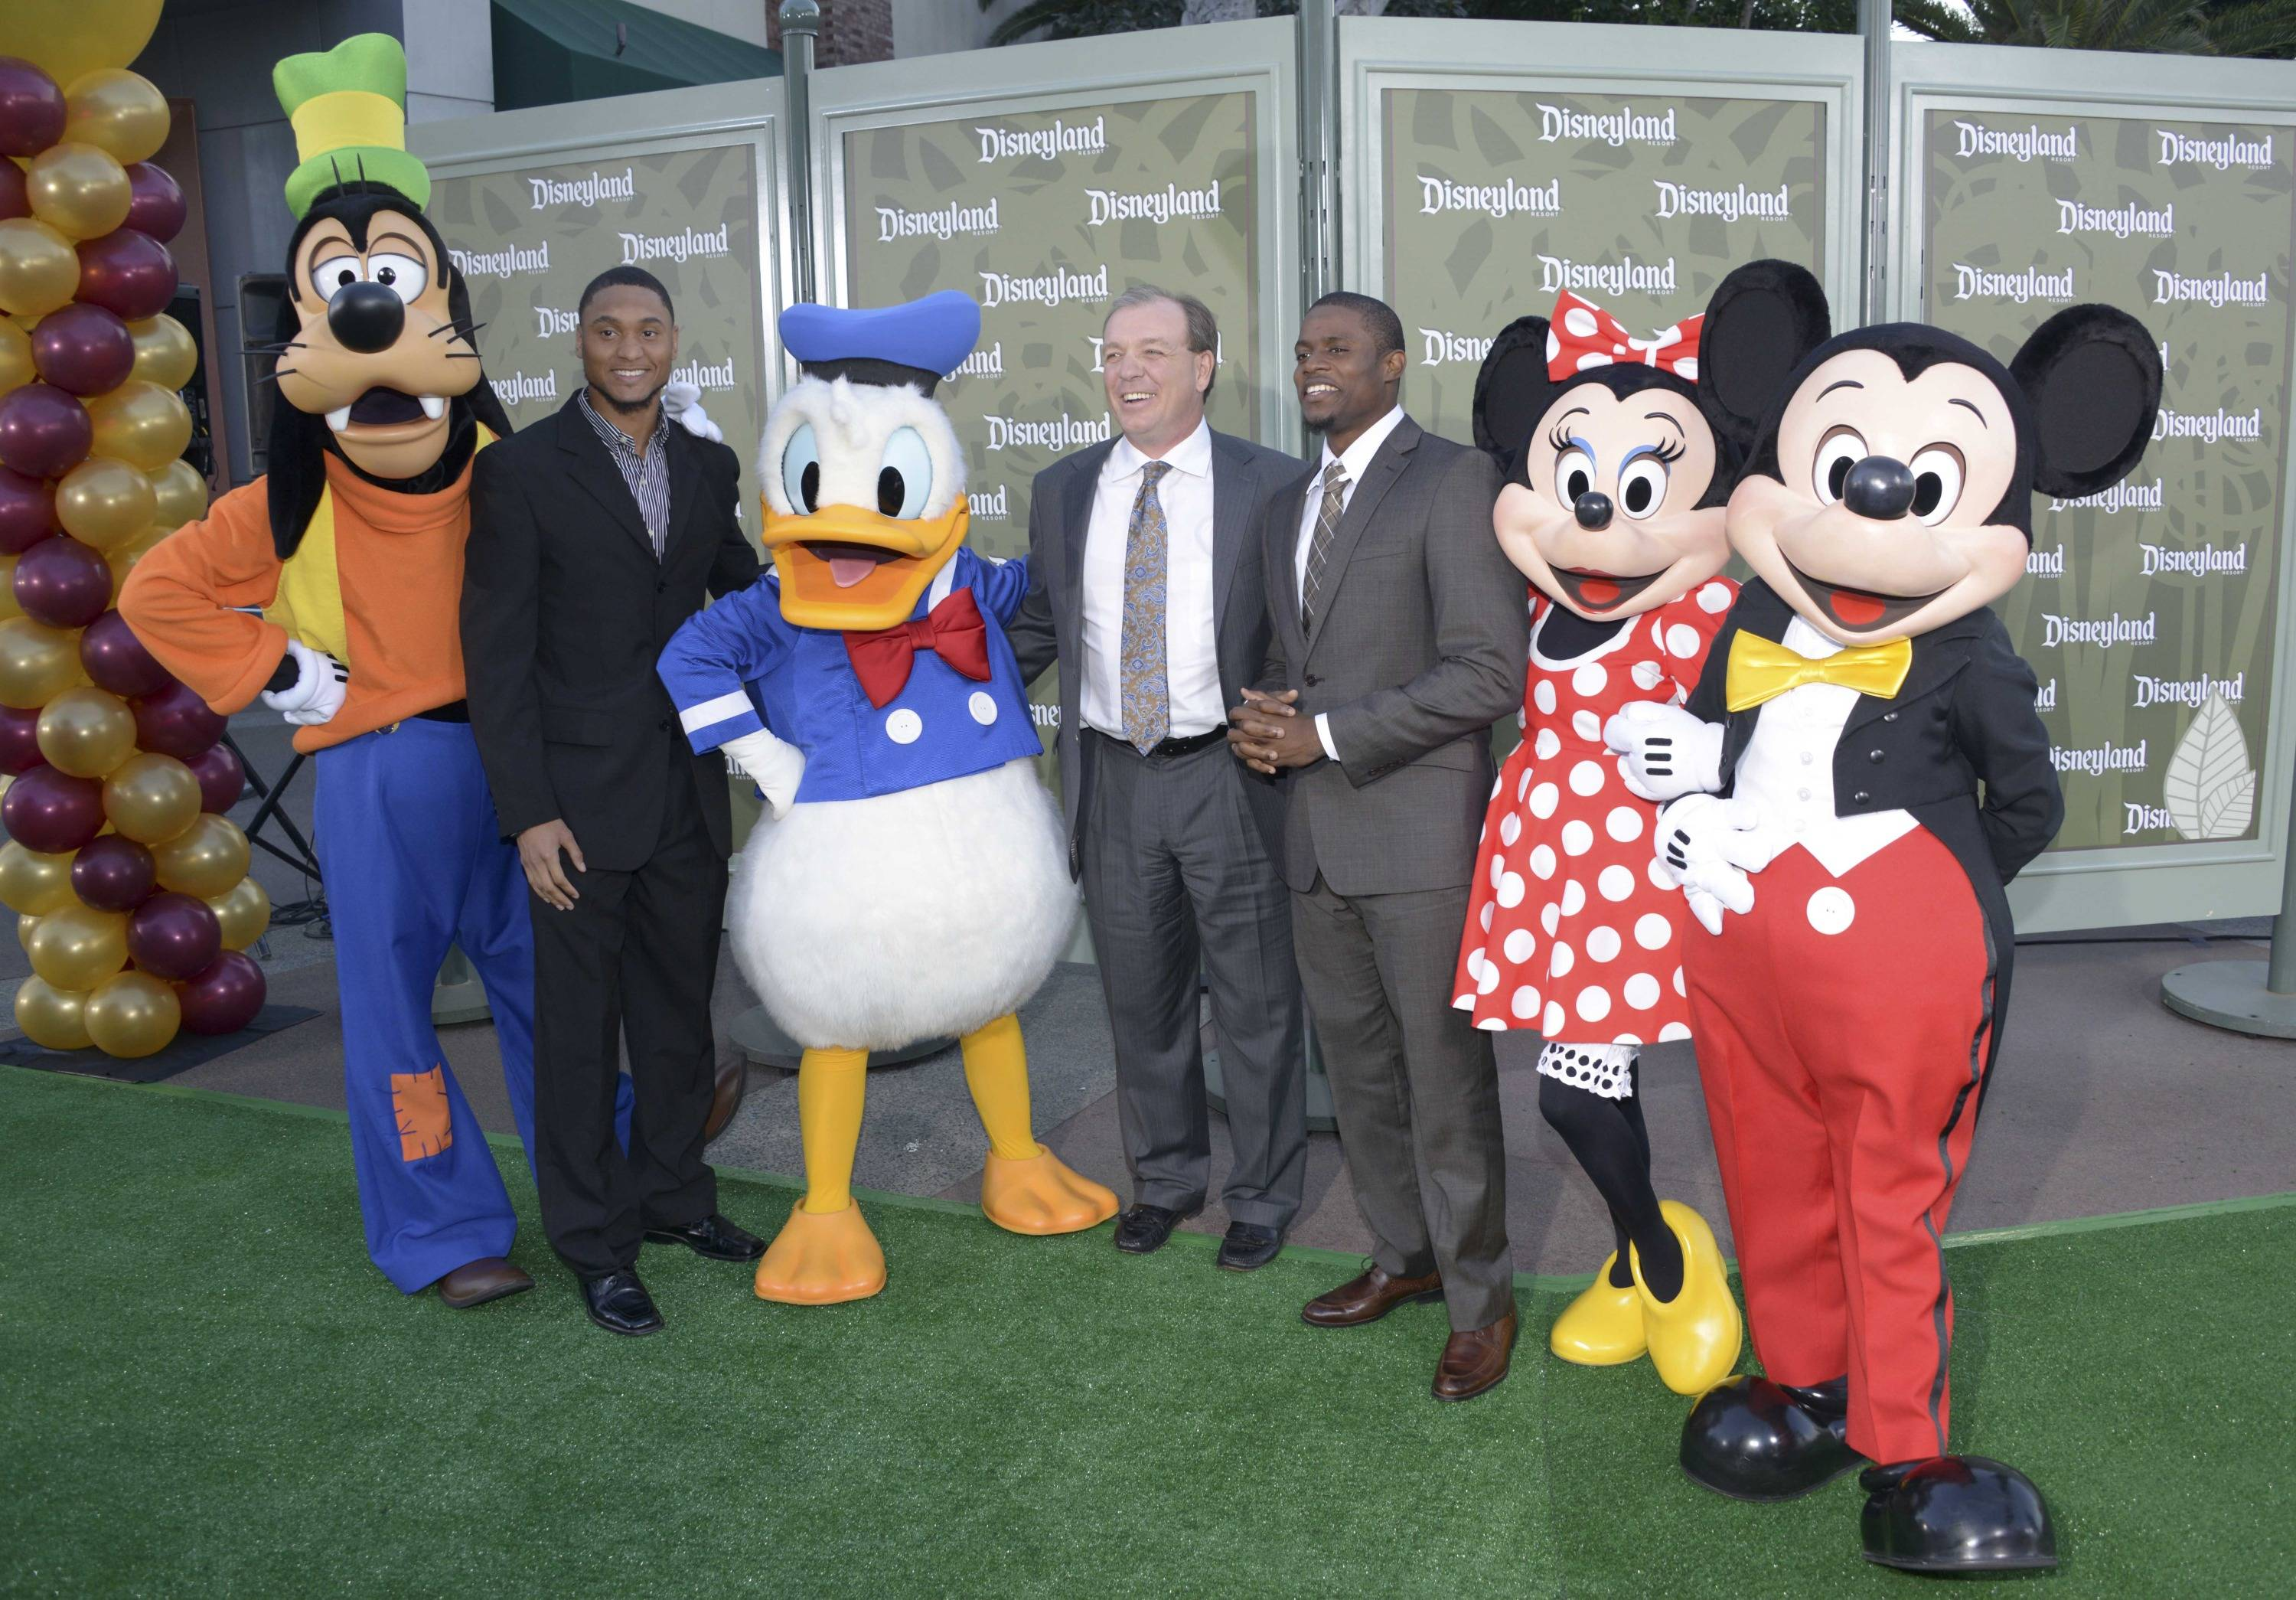 Florida State Seminoles players and coaches pose with Disney characters at a press conference for the 2014 BCS National Championship at ESPN Zone Downtown Disney. From left: Goofy, wide receiver Rashad Greene, Donald Duck, Jimbo Fisher, defensive back Lamarcus Joyner, Minnie Mouse and Mickey Mouse. Mandatory Credit: Kirby Lee-USA TODAY Sport